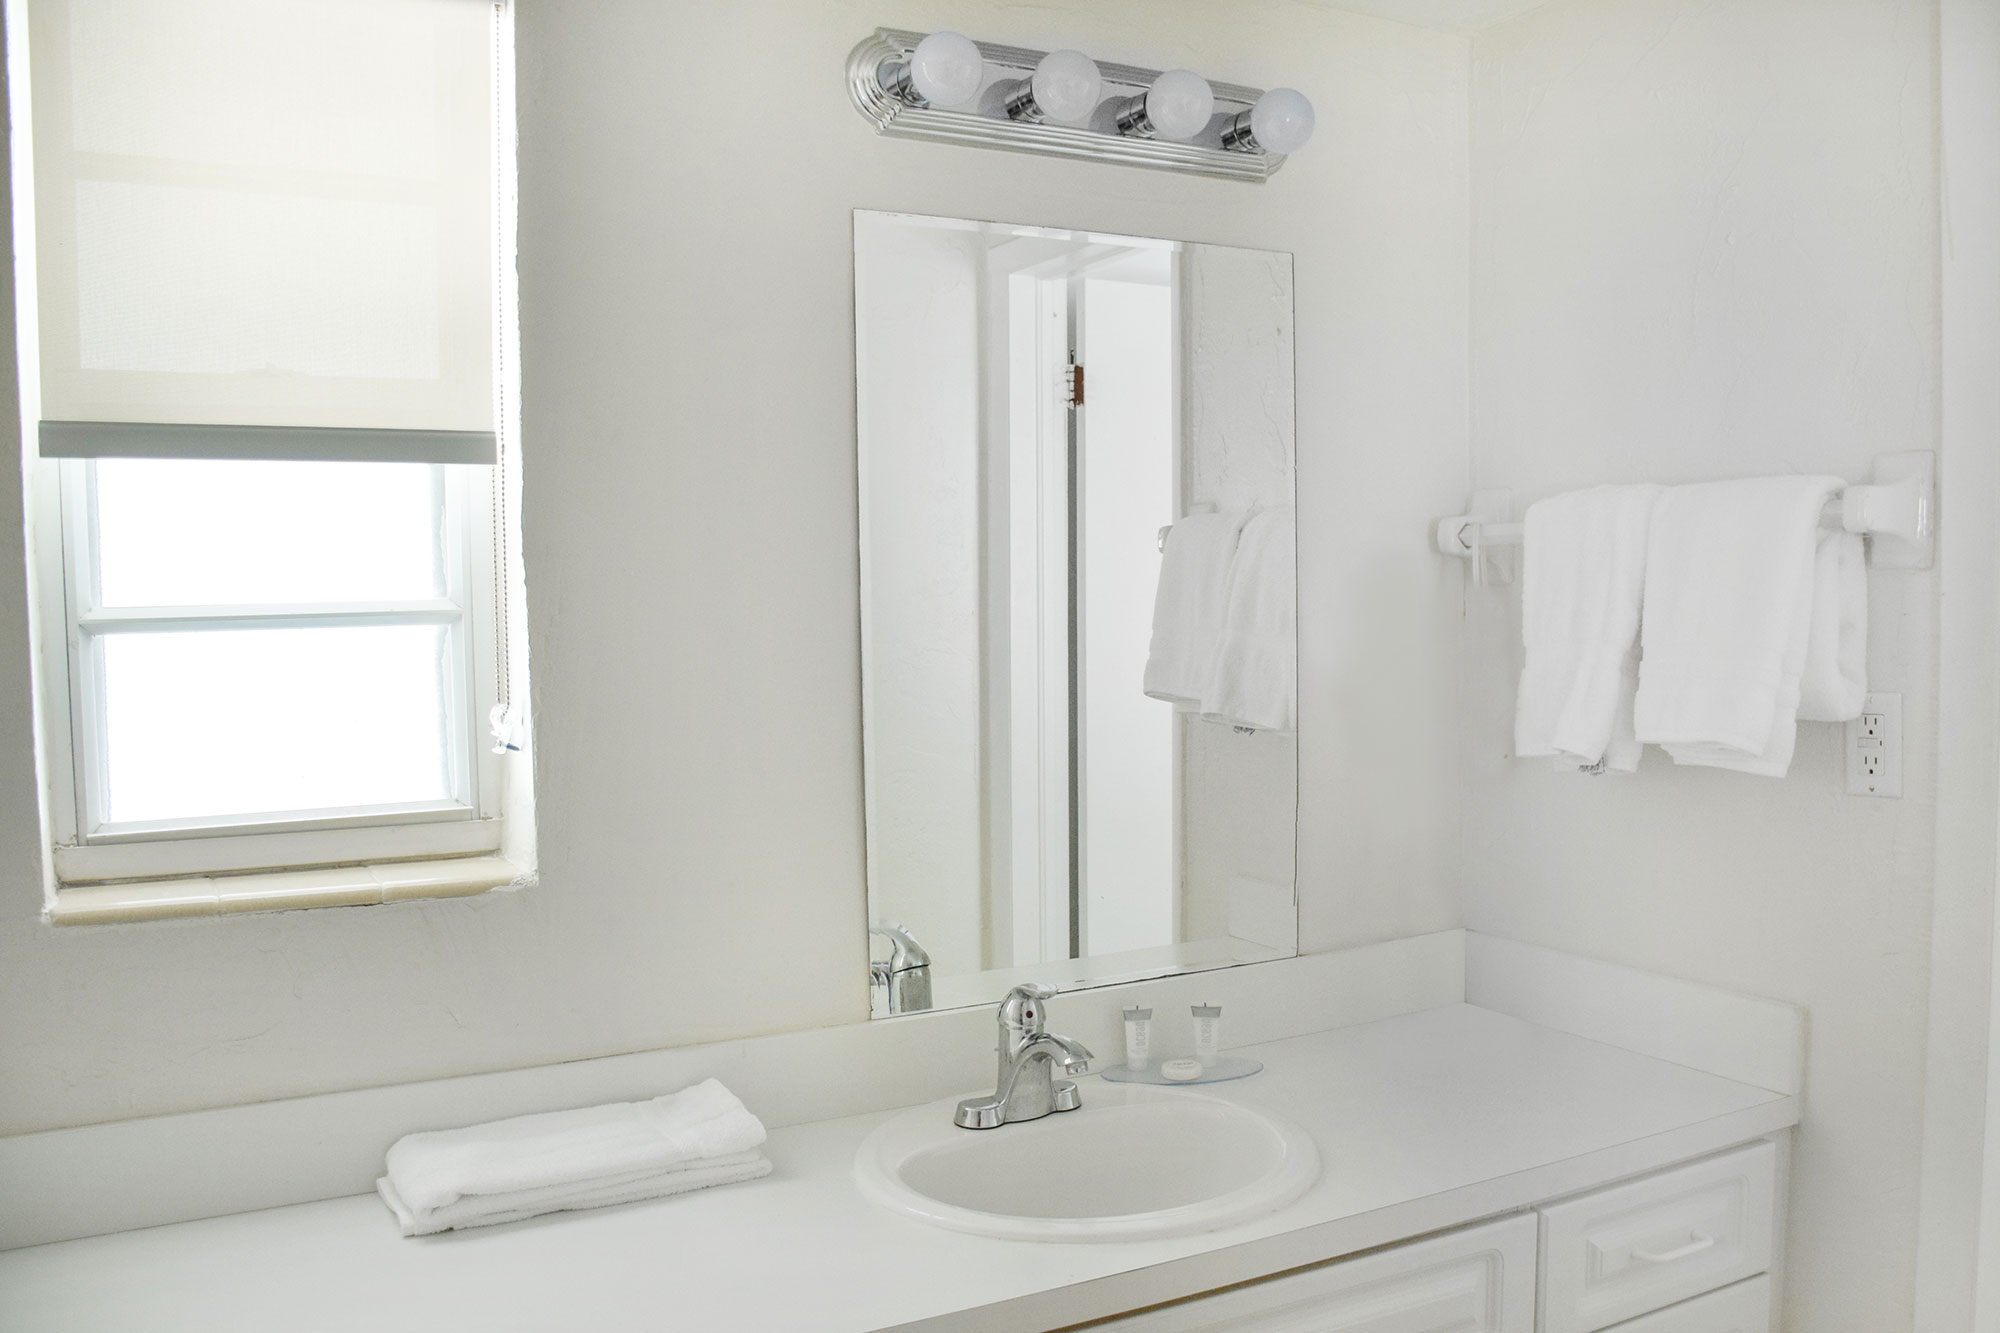 Bathroom of one of the apartments at Coral Reef